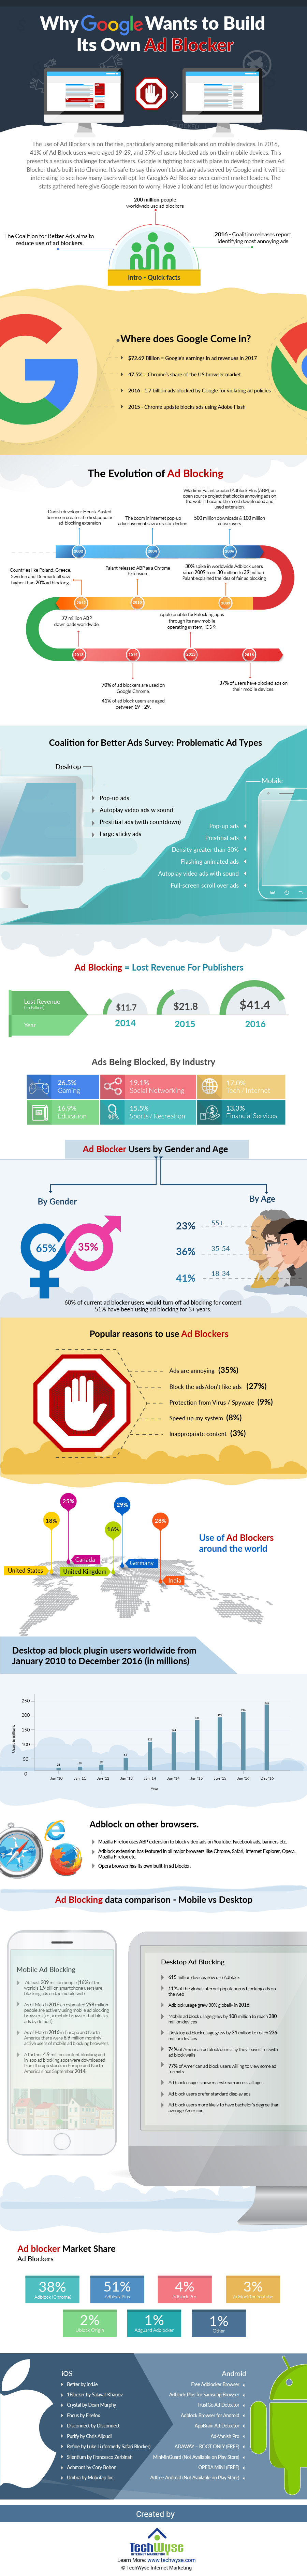 Ad Blocker and Why Google Wants to Build Its Own [Infographic]